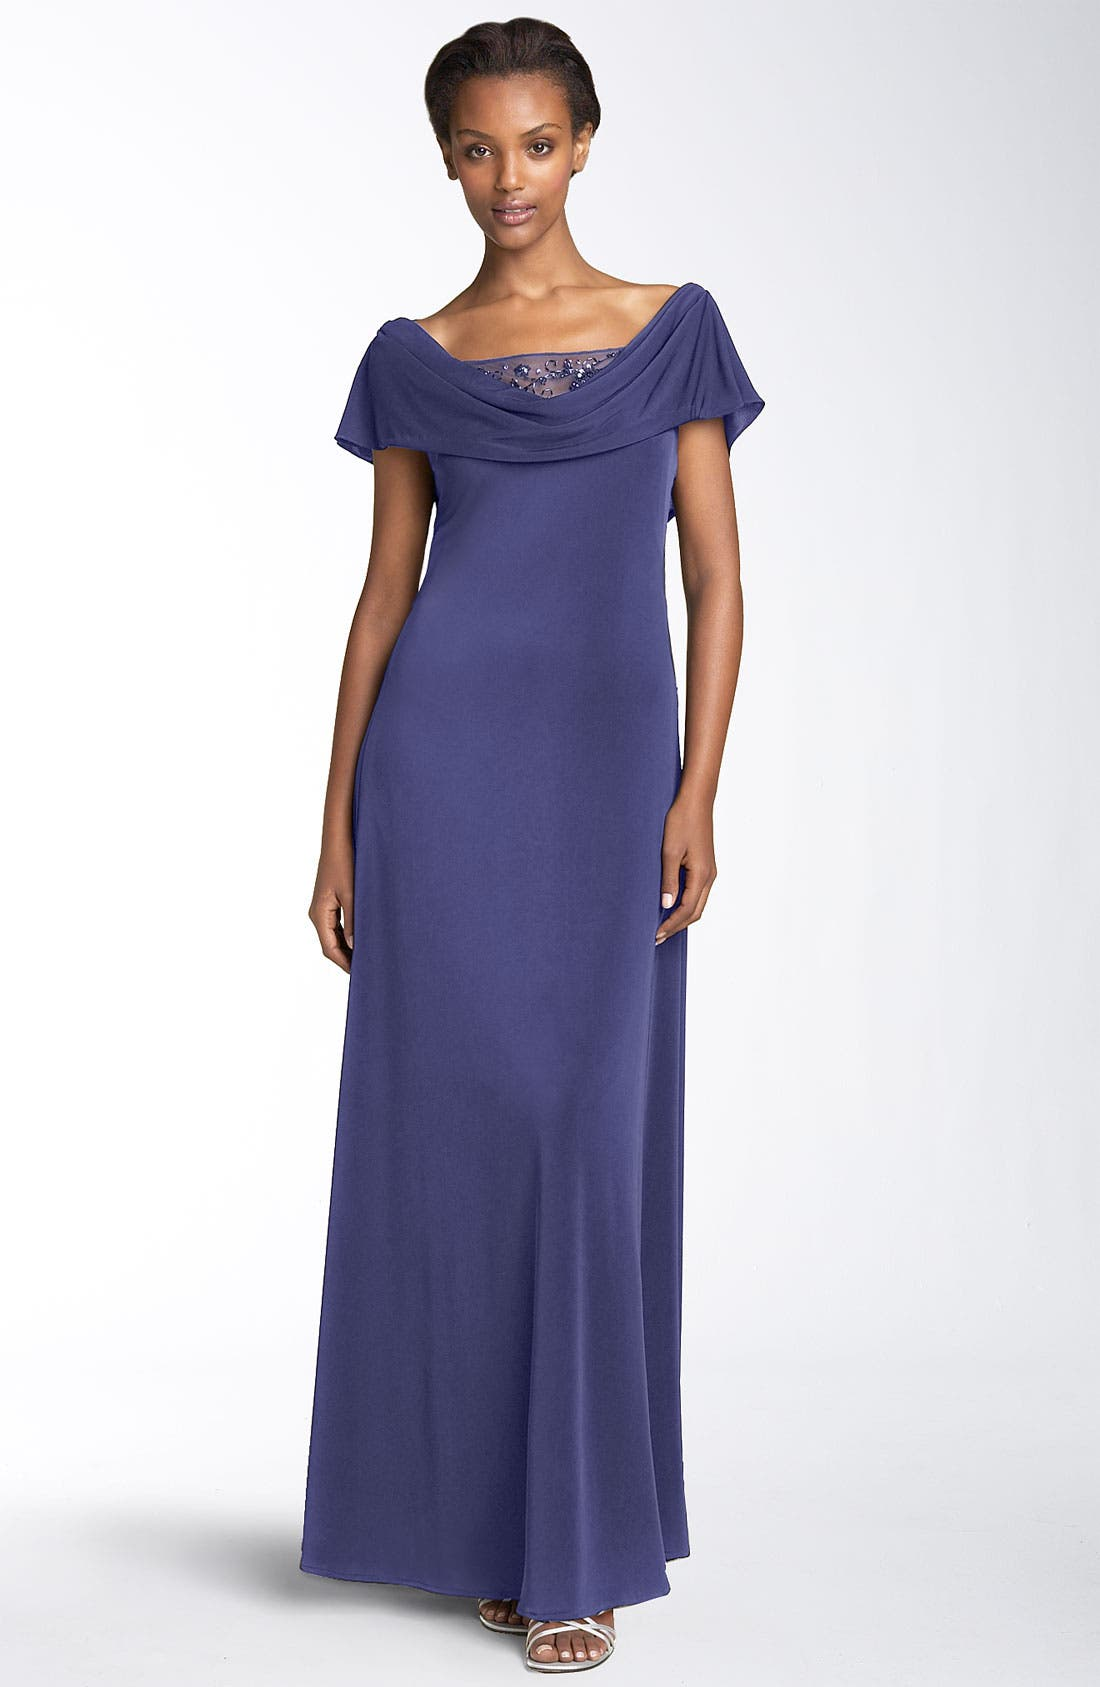 Alternate Image 1 Selected - Patra Drape Neck Gown with Beaded Illusion Mesh